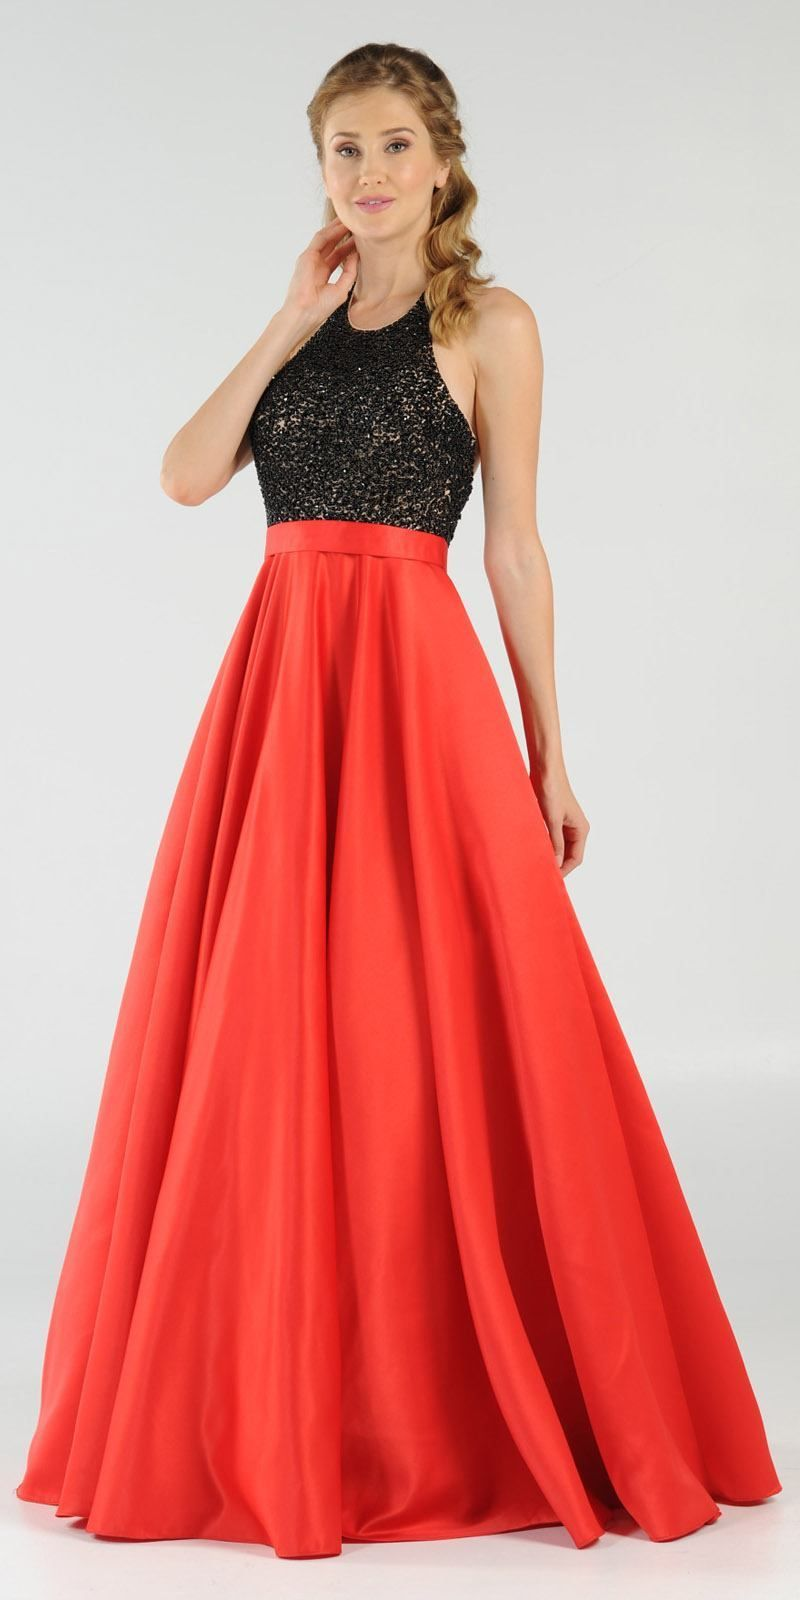 Redblack halter beaded open back long prom dress with pockets red